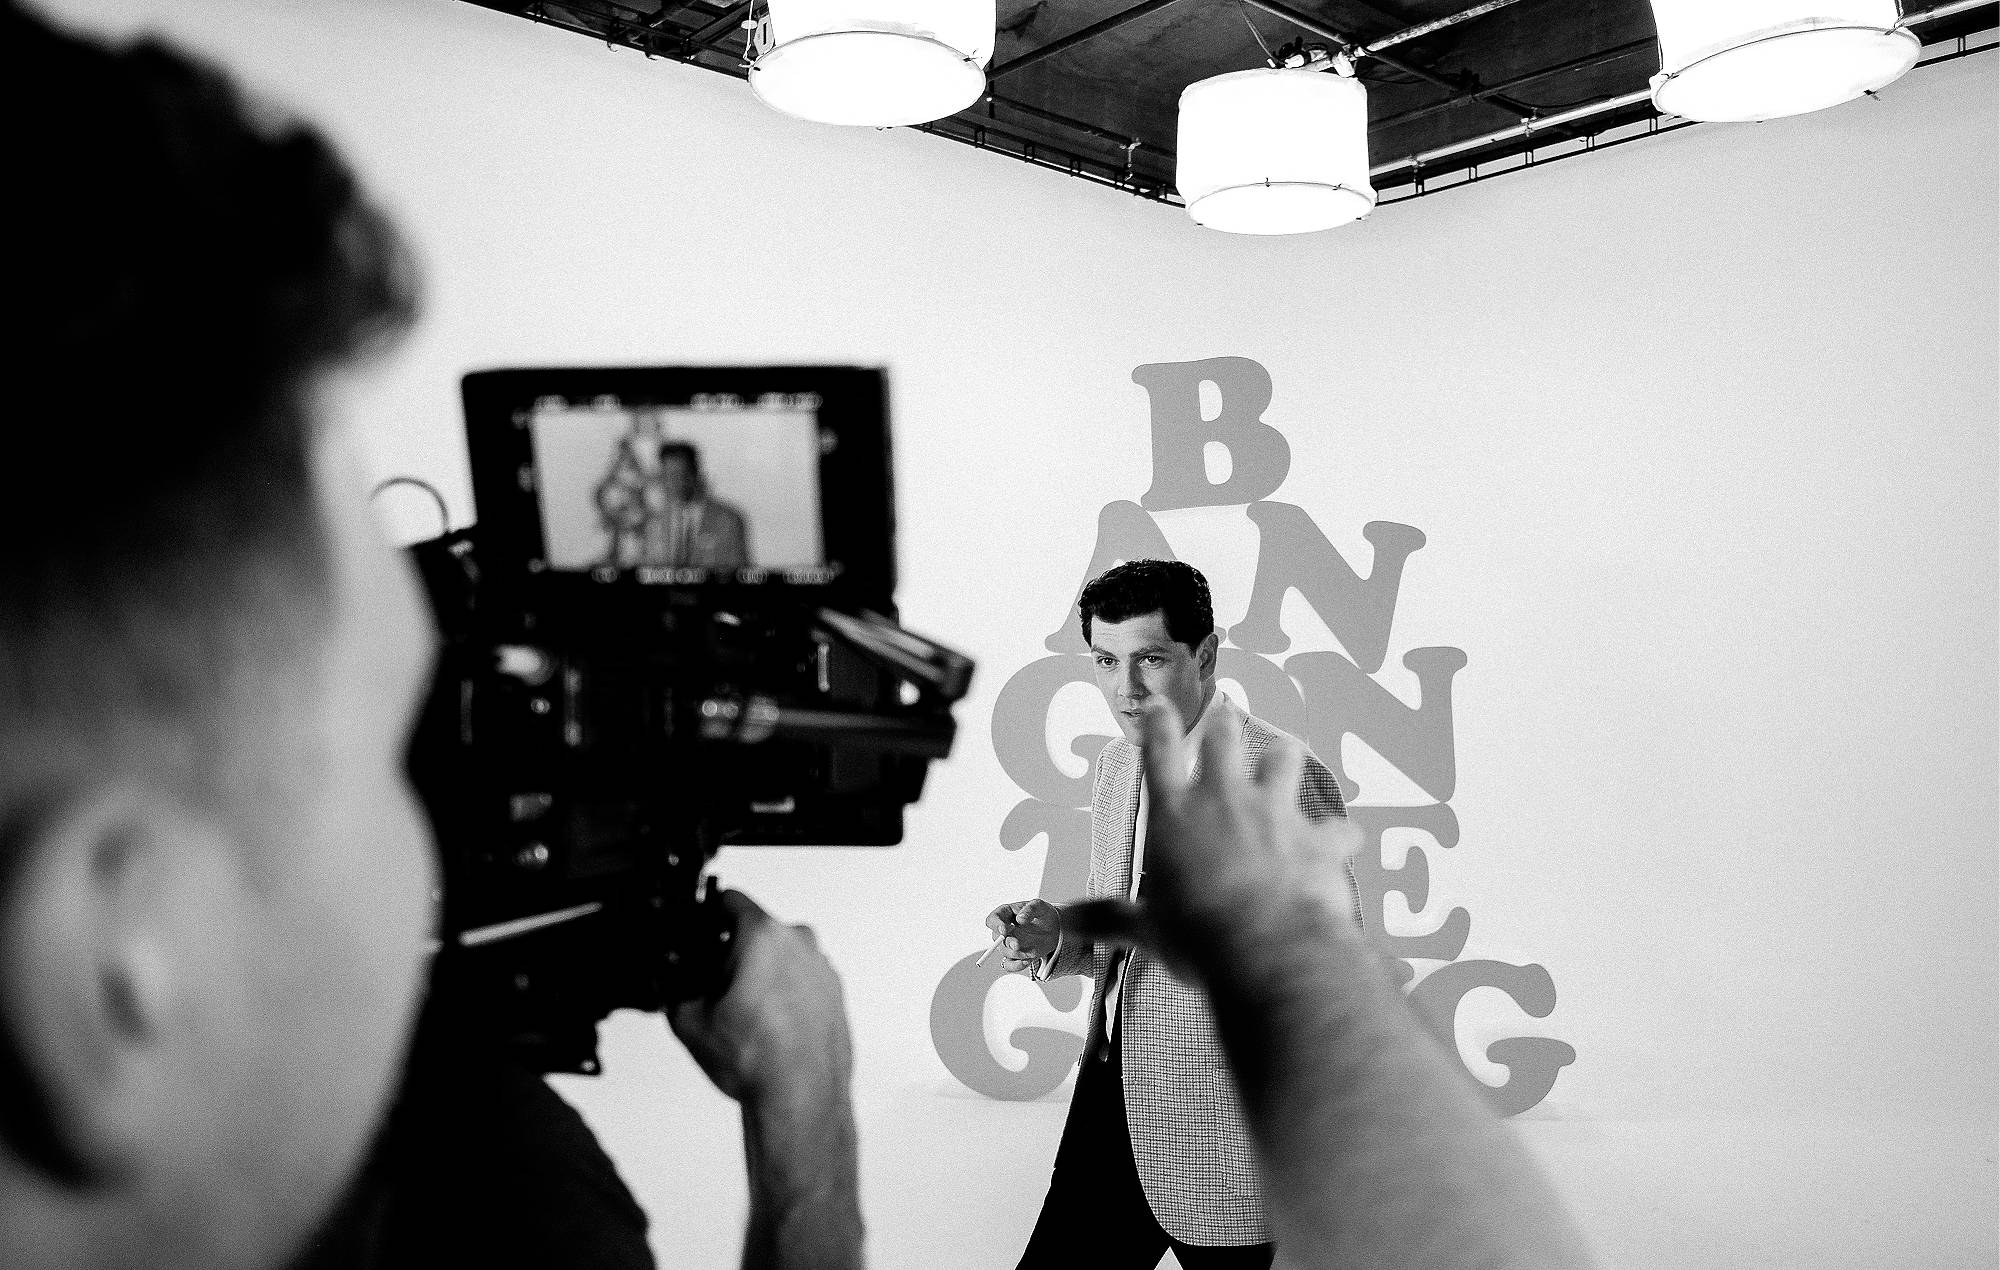 Twin Atlantic's 'Bang On The Gong' video – behdind the scenes. Credit: Craig Neale